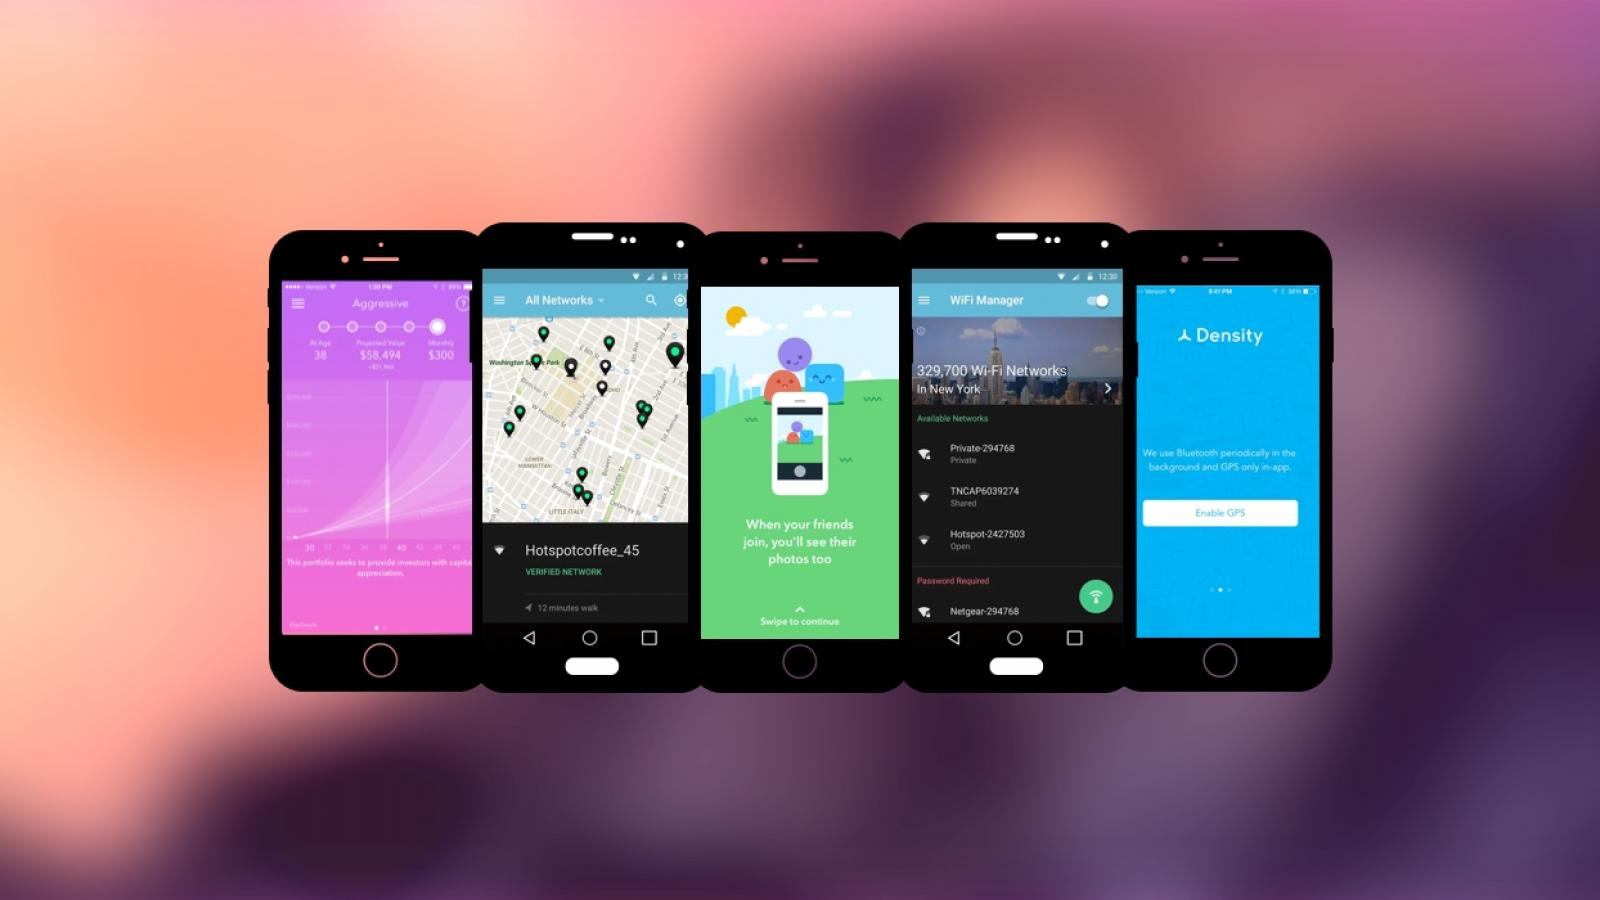 Weekly Apps: Acorns, Roll, Density and more